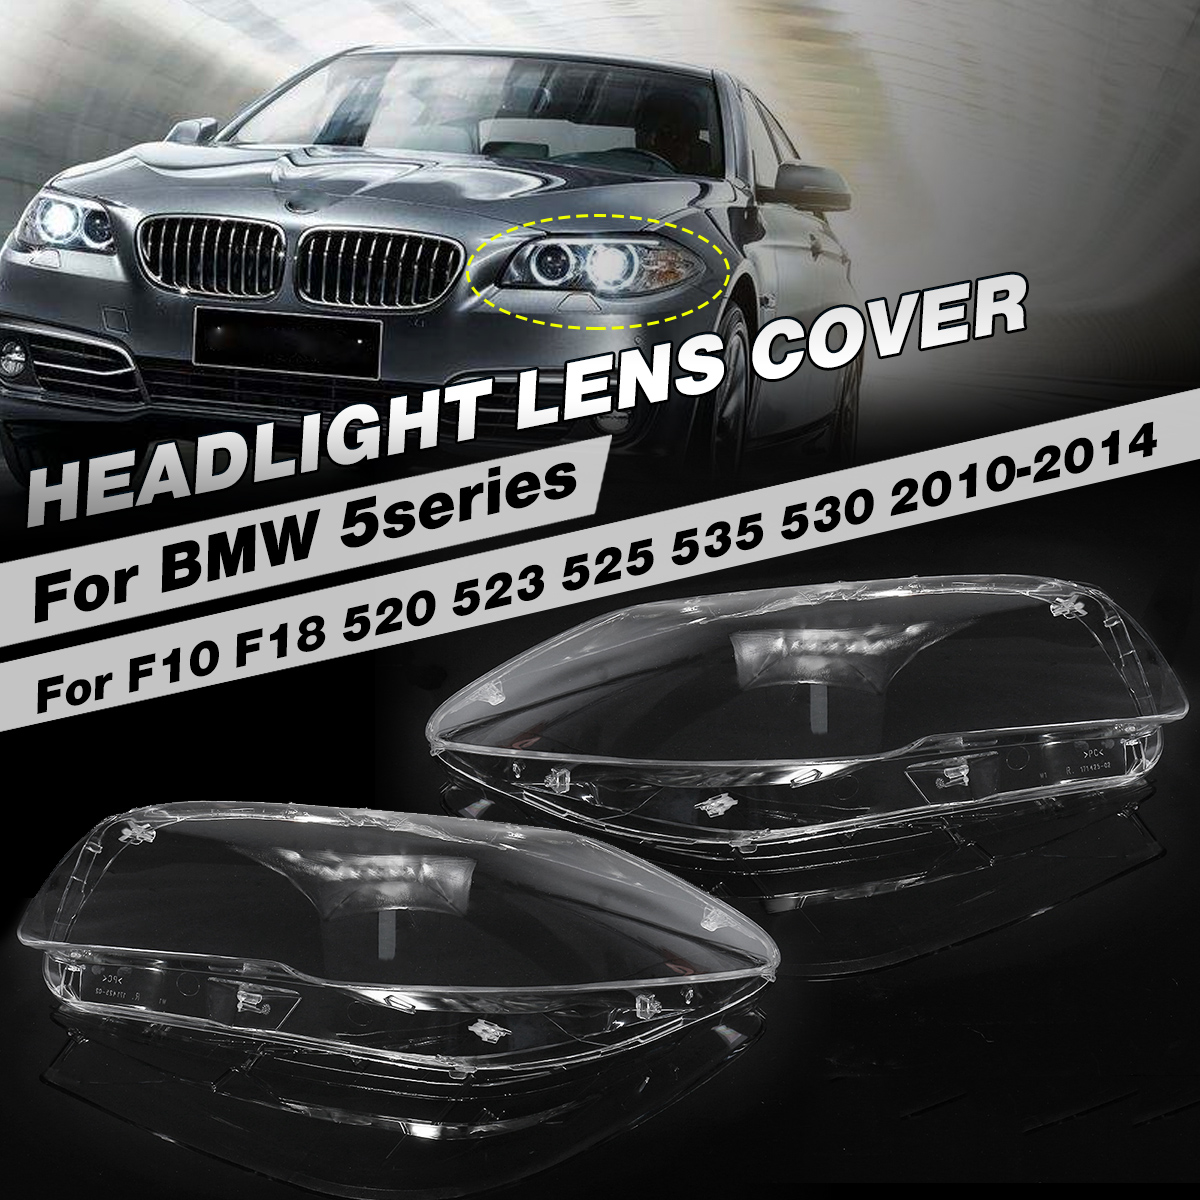 1 Pair High Quality Headlight Clear Lens Cover Front Left + Right Headlamp Shell For BMW F10 F18 520 523 525 535 530 20102015